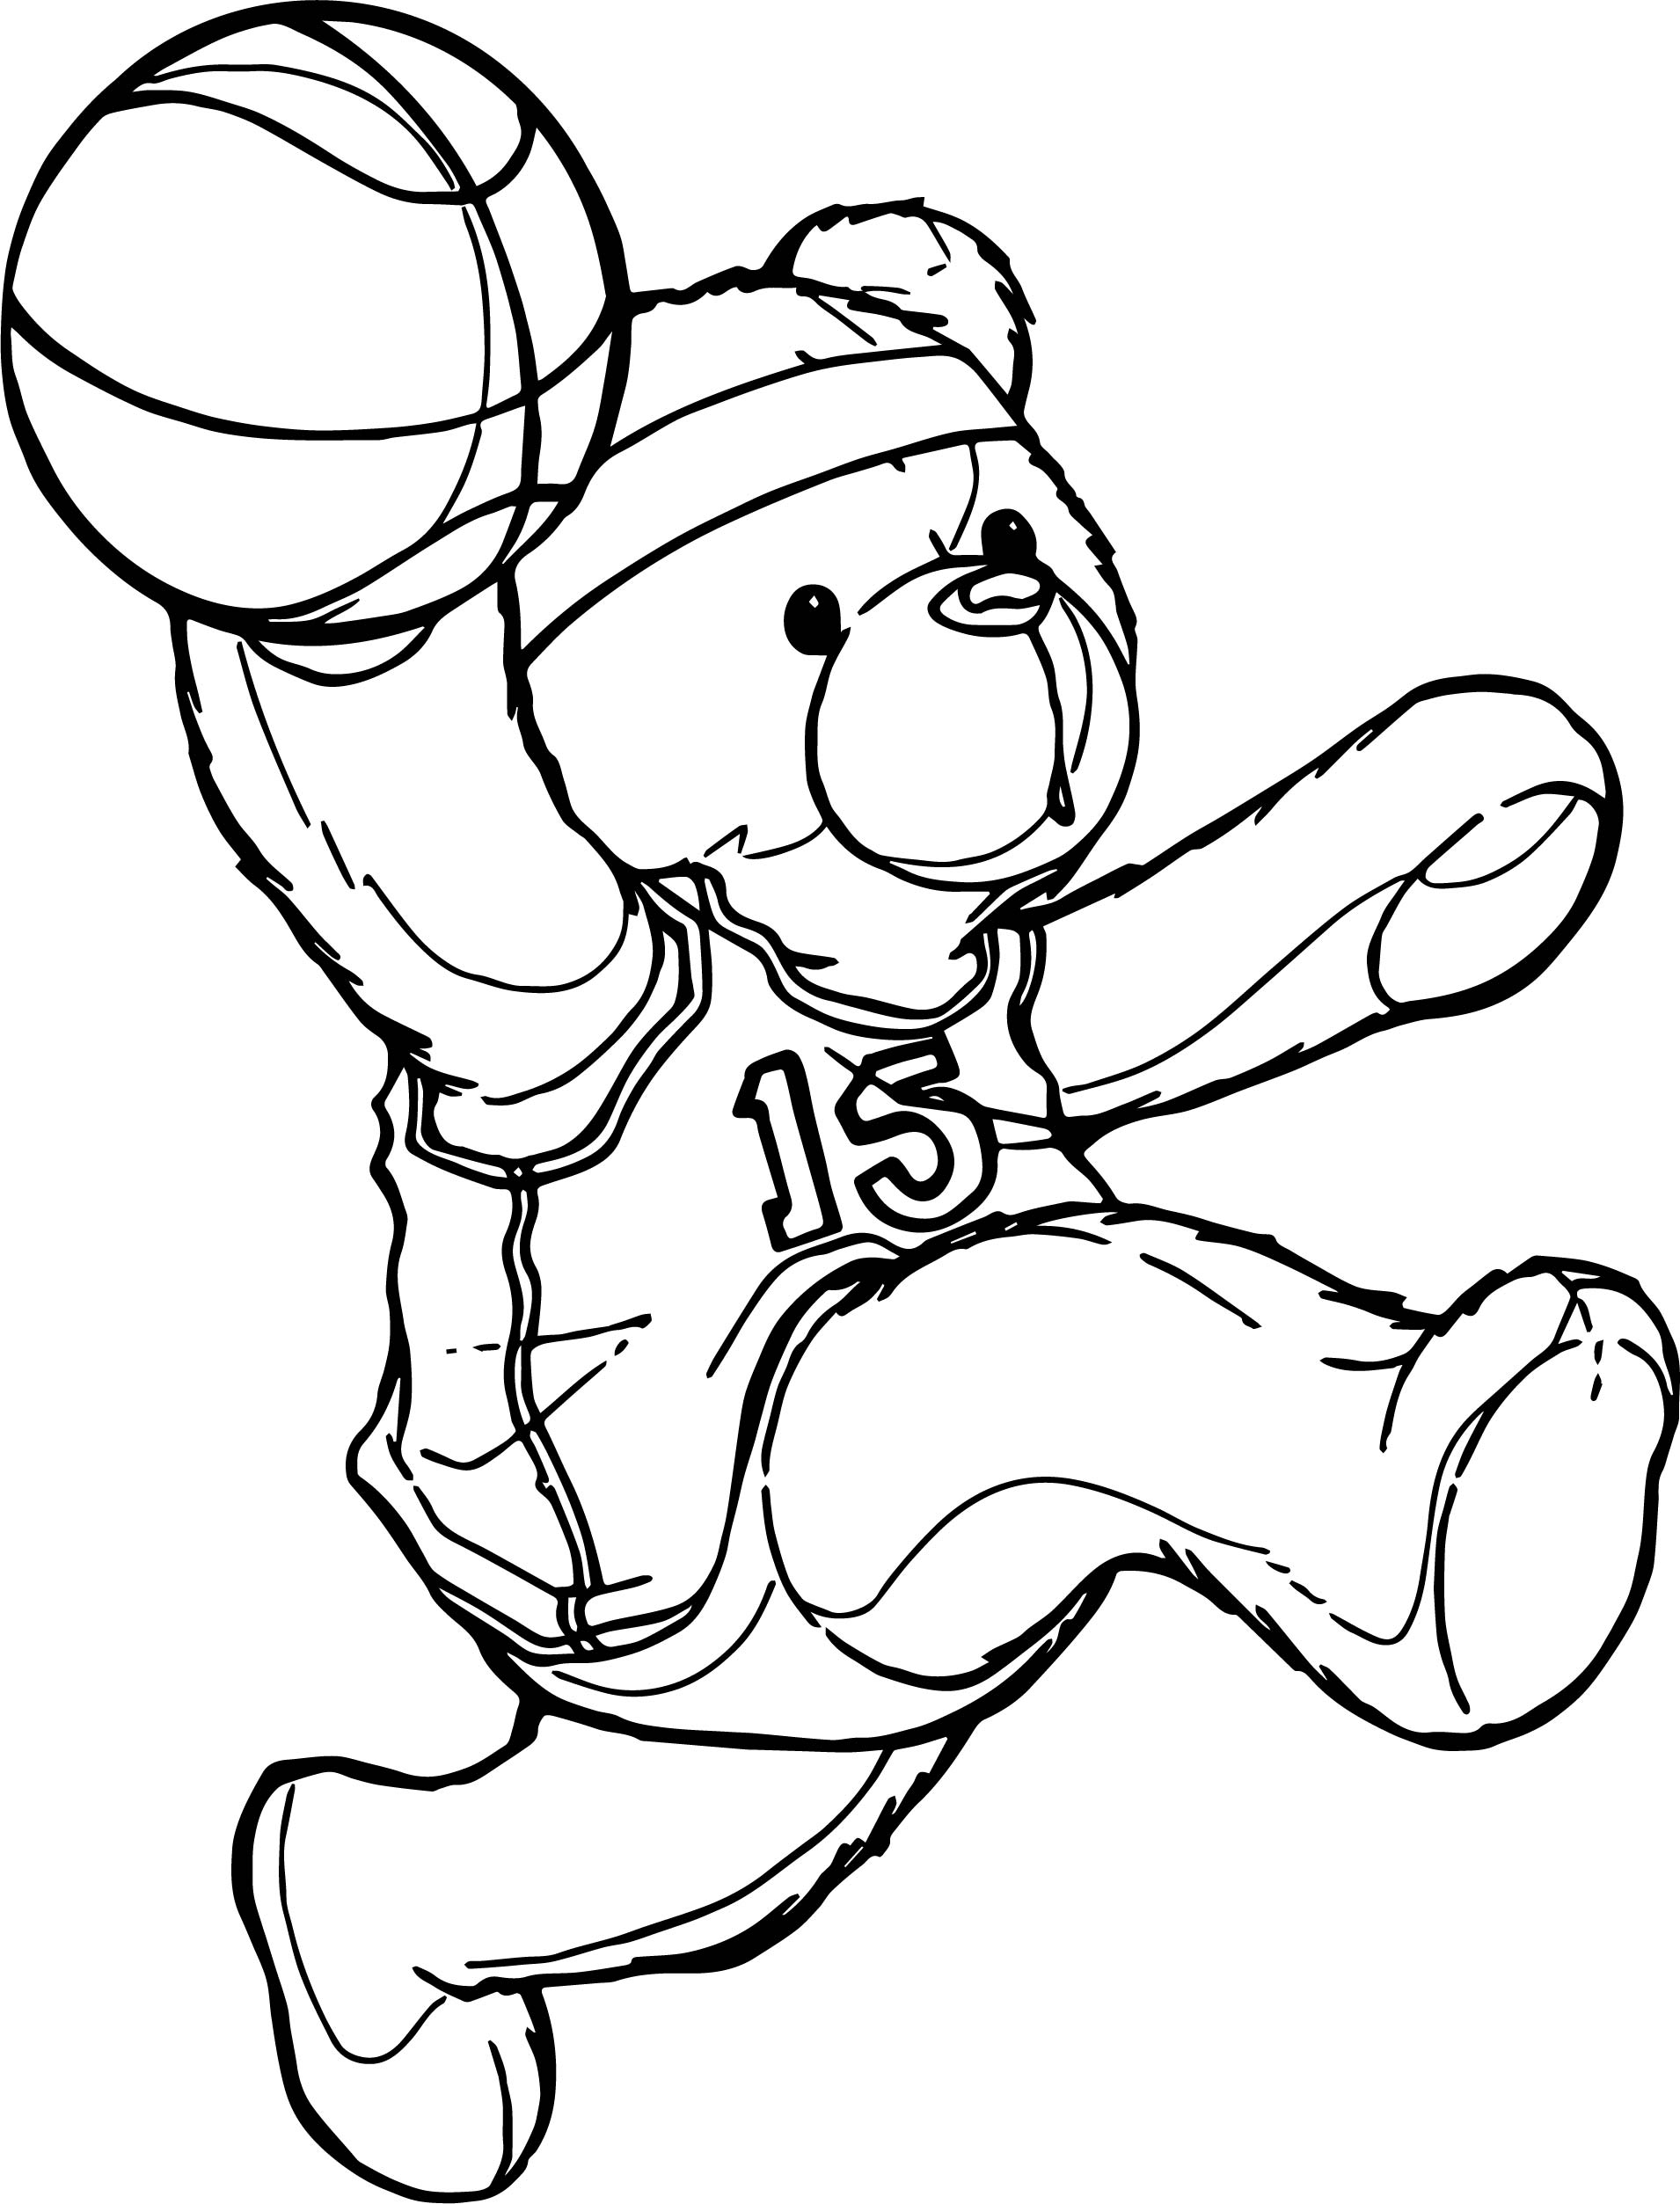 kid playing basketball coloring pages - photo#19